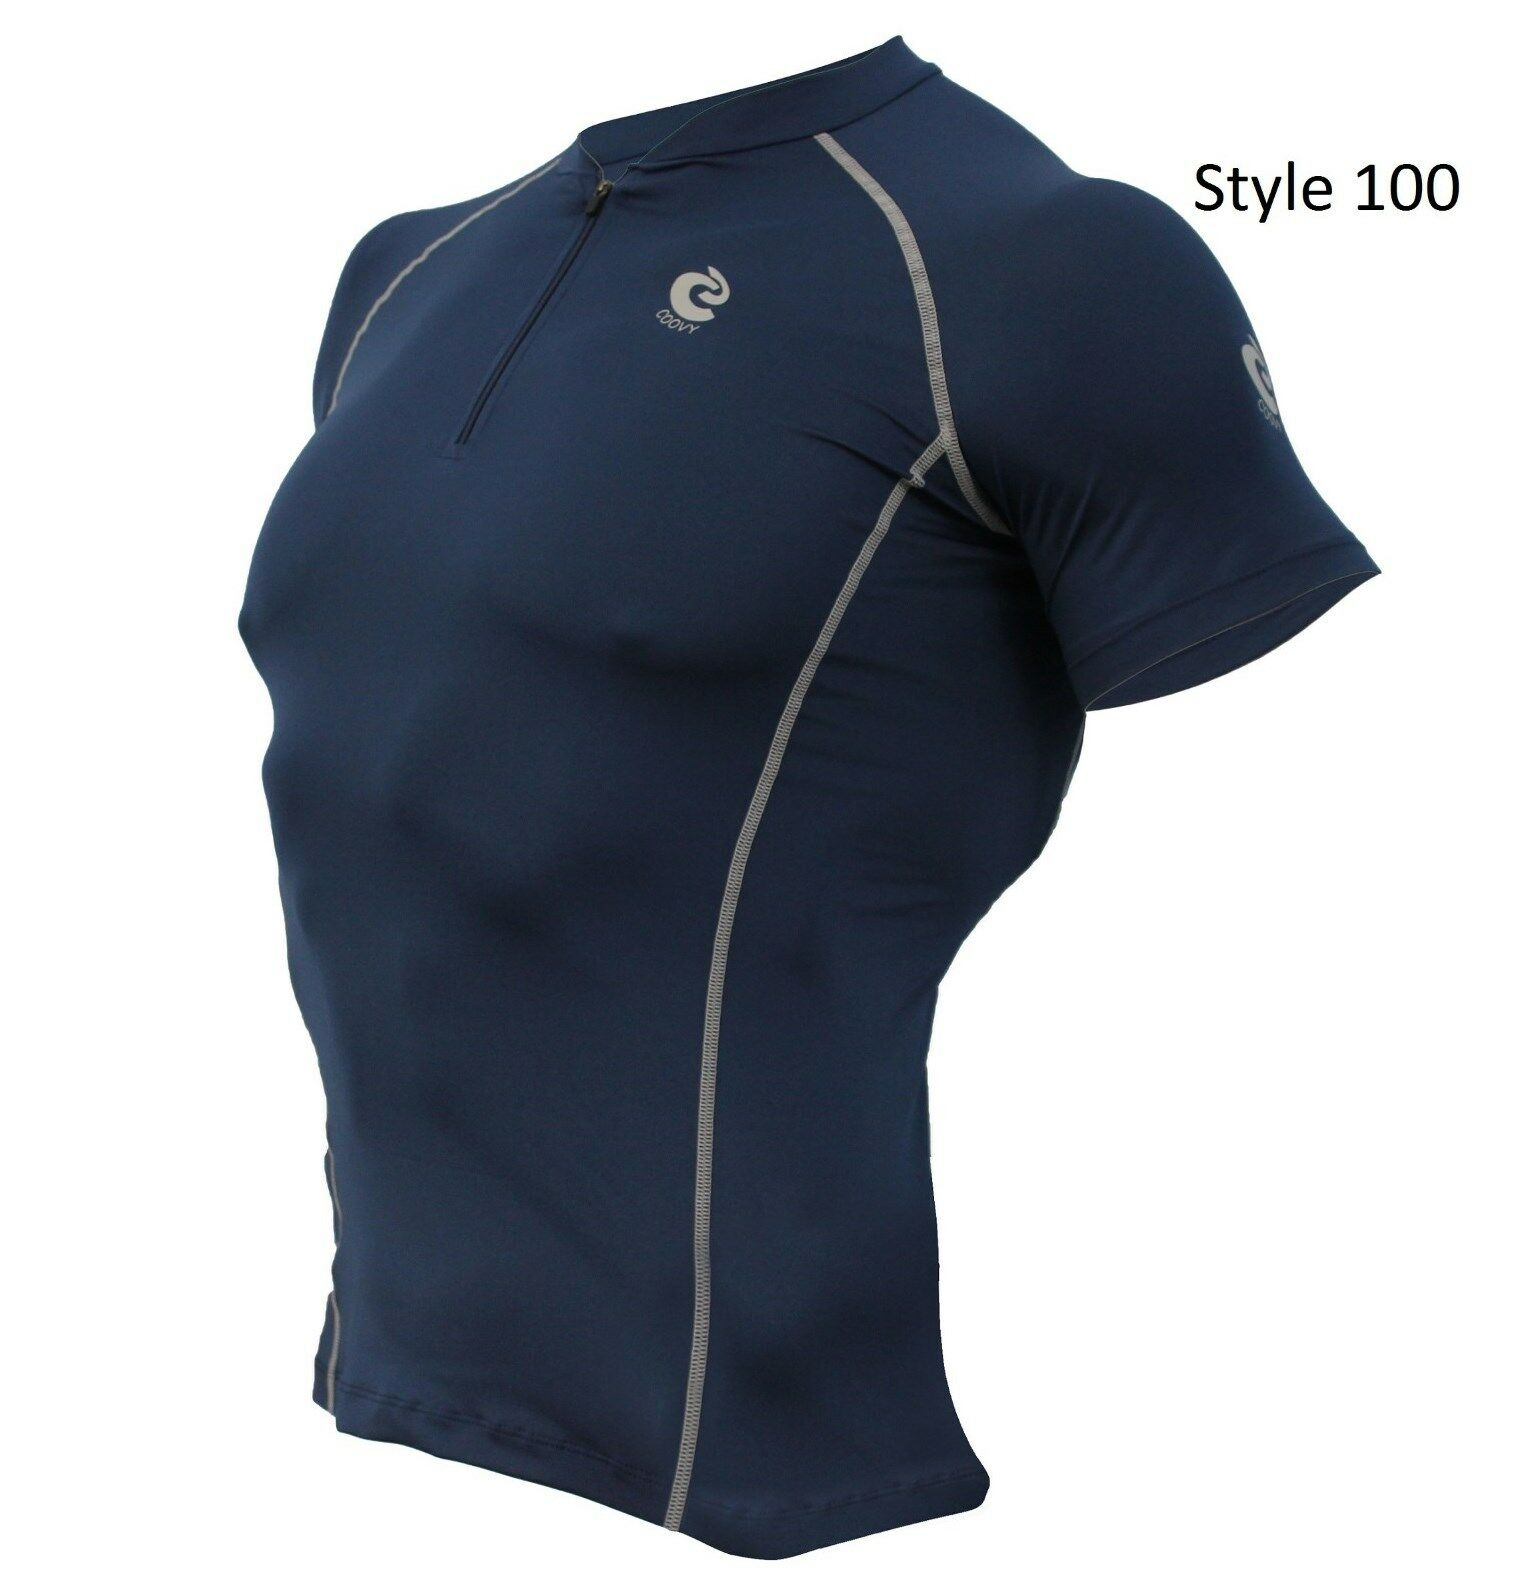 100 Navy w/zip front Short Sleeve Shirt